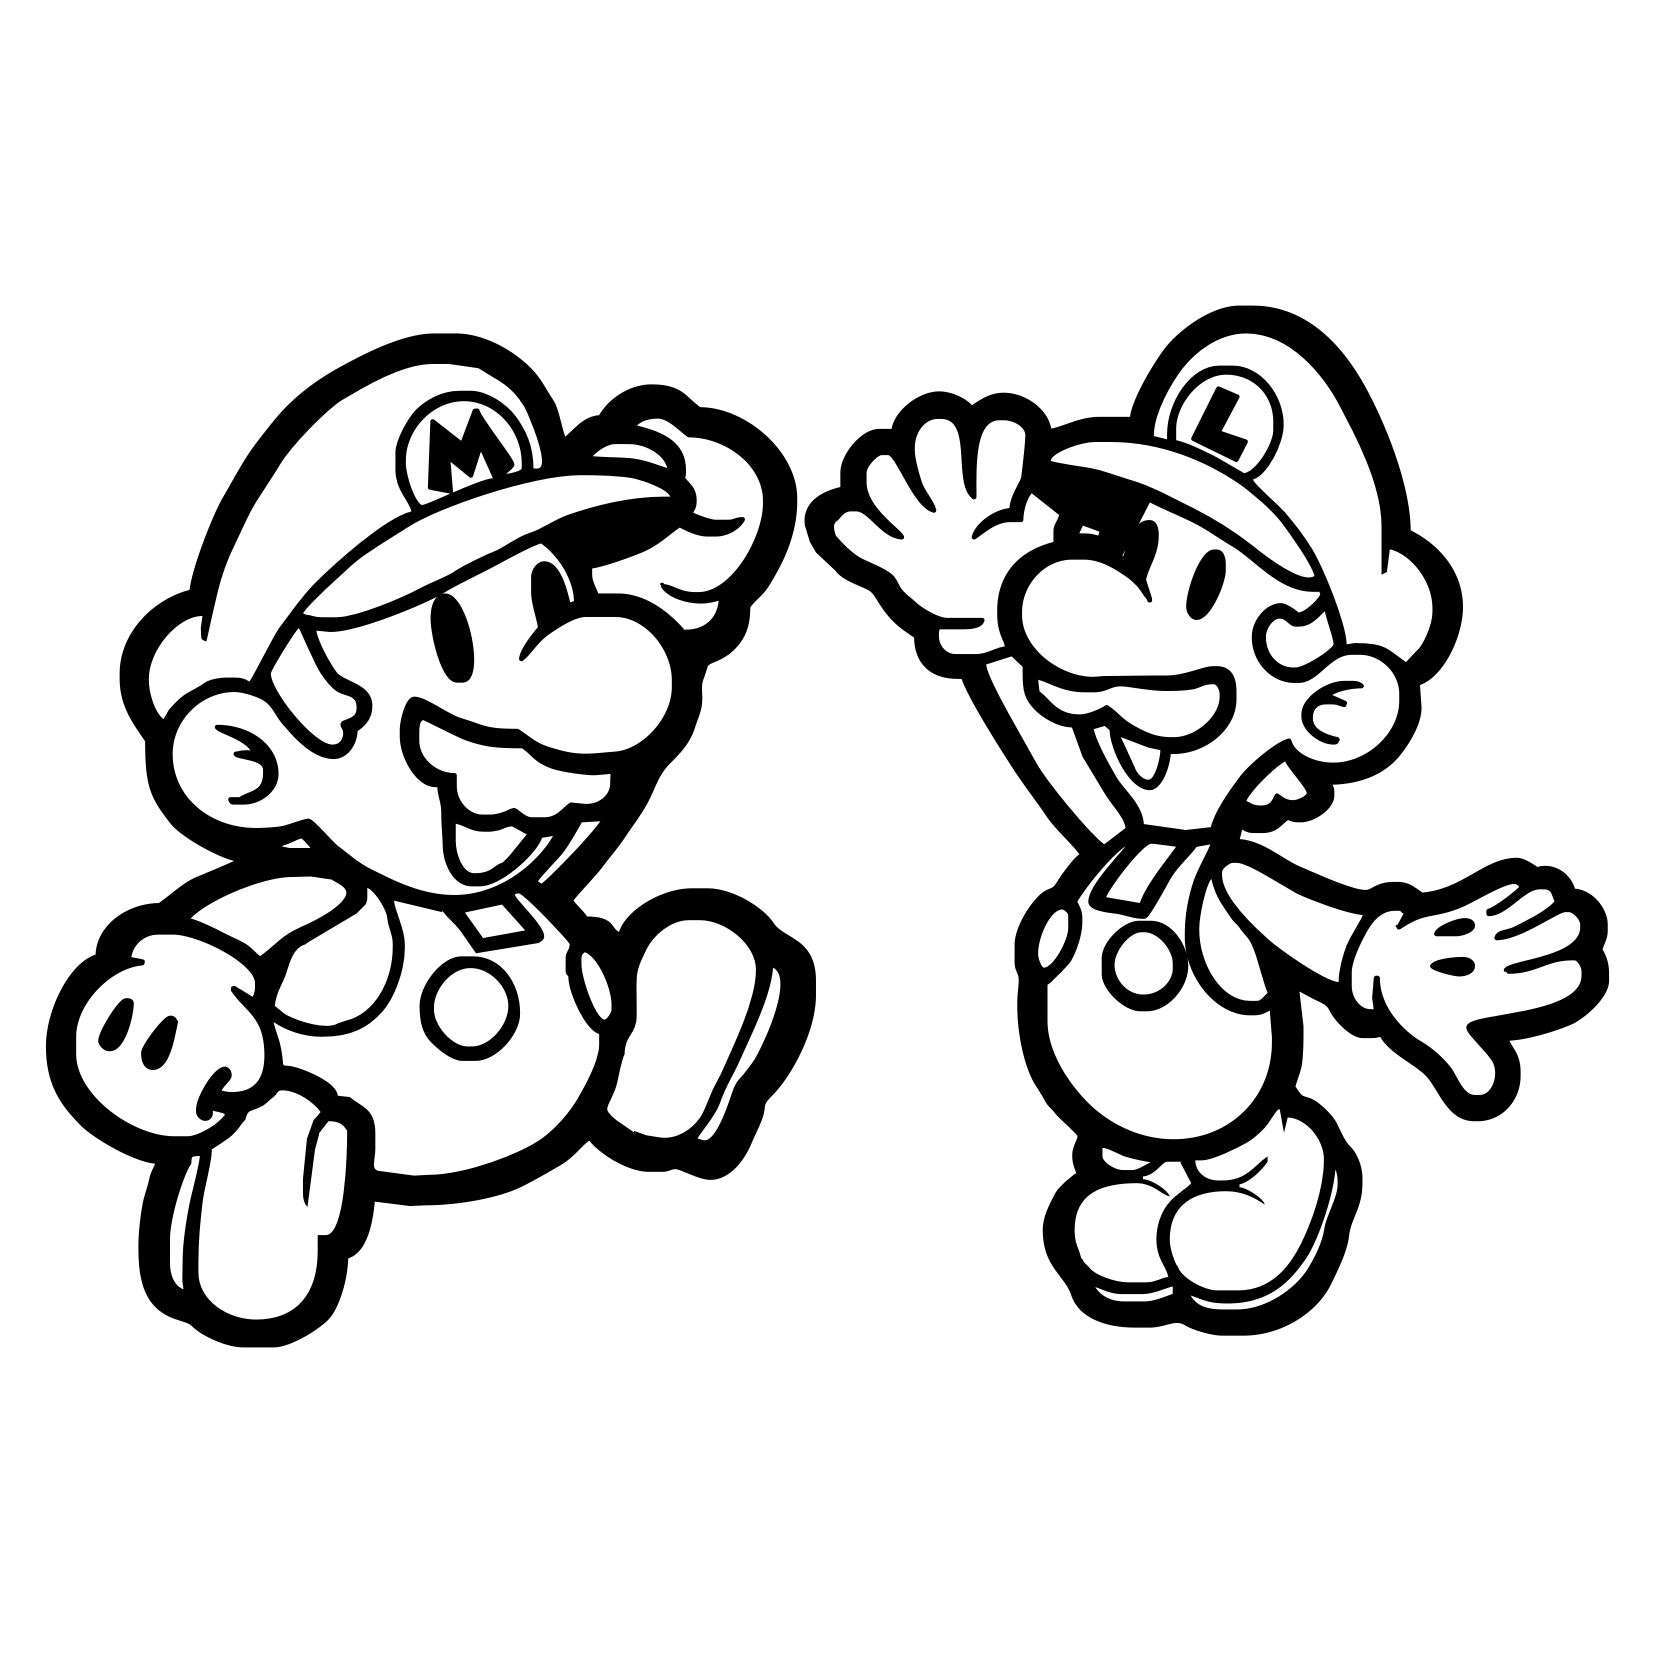 Super Mario Odyssey Coloring Pages To Print Download